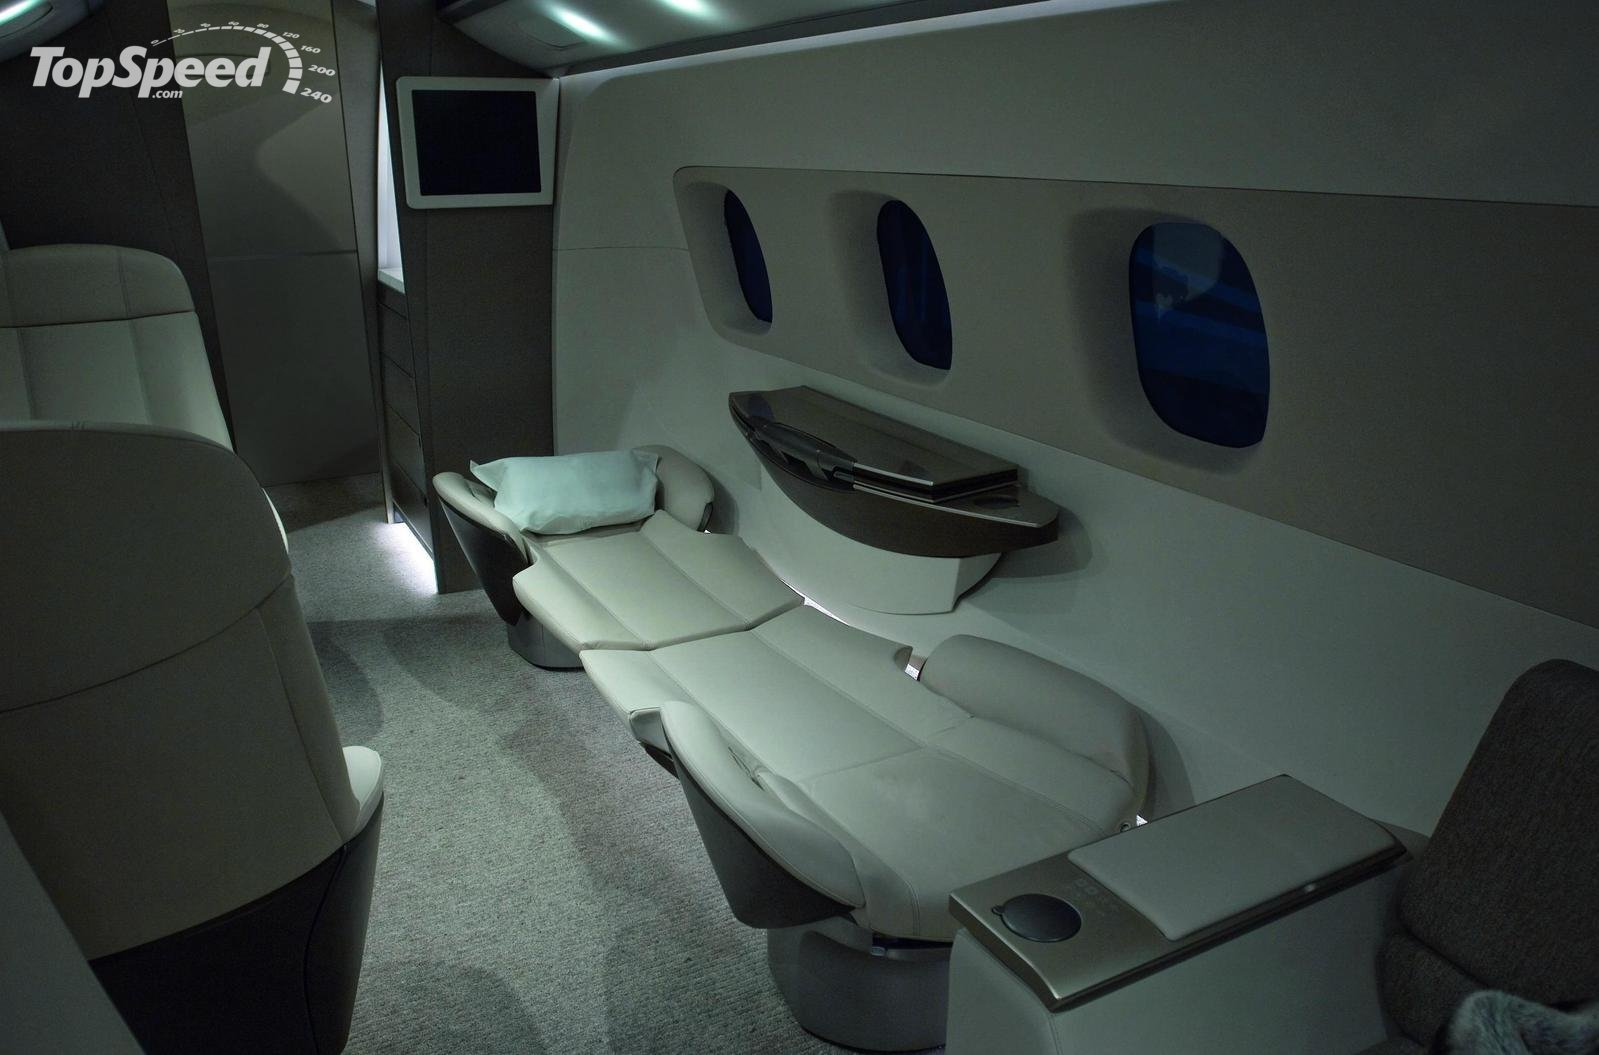 Bmw designs aircraft interior picture 207128 car news for Aircraft interior designs